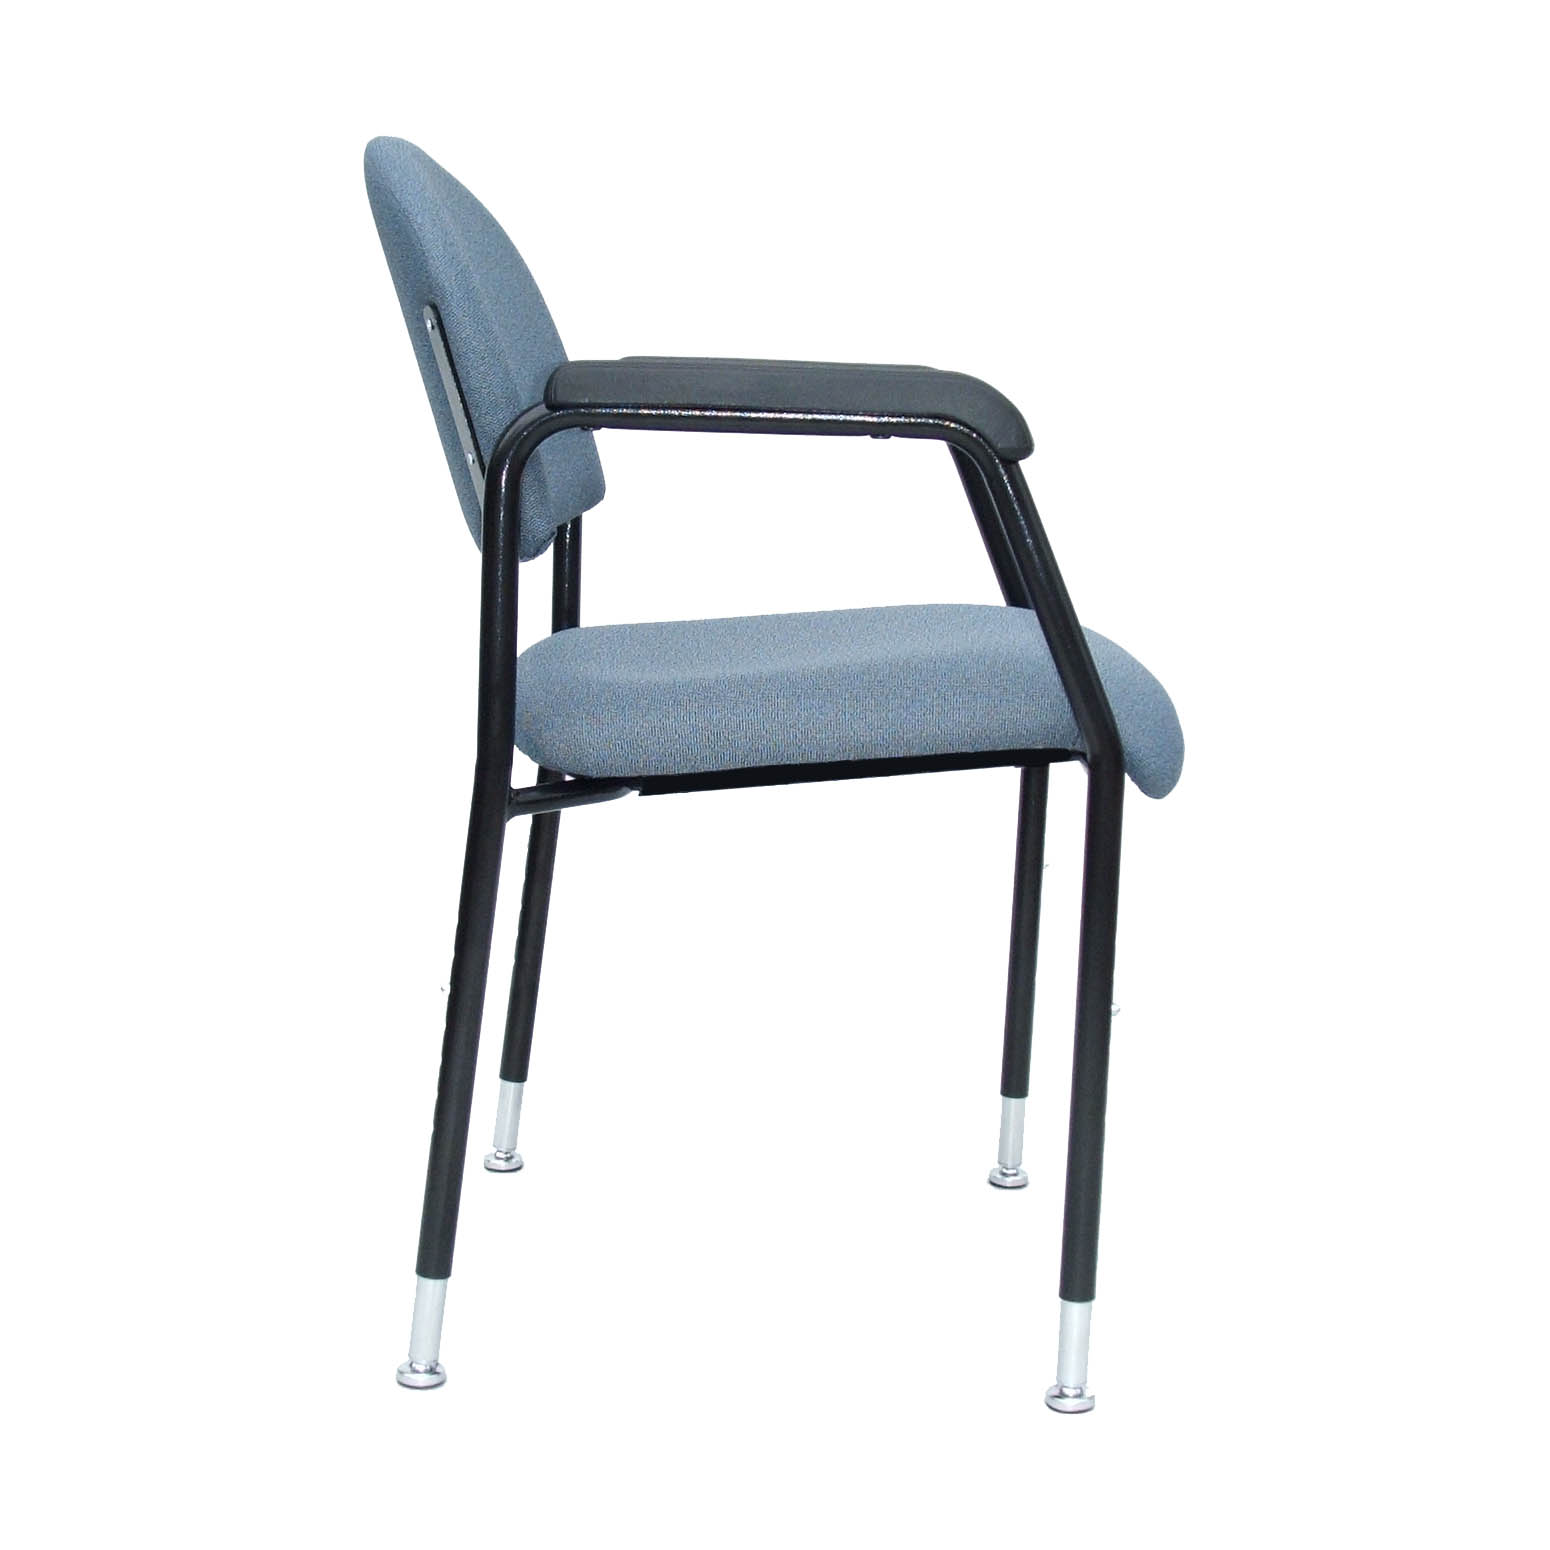 Utility chair with height-adjustable legs - side view